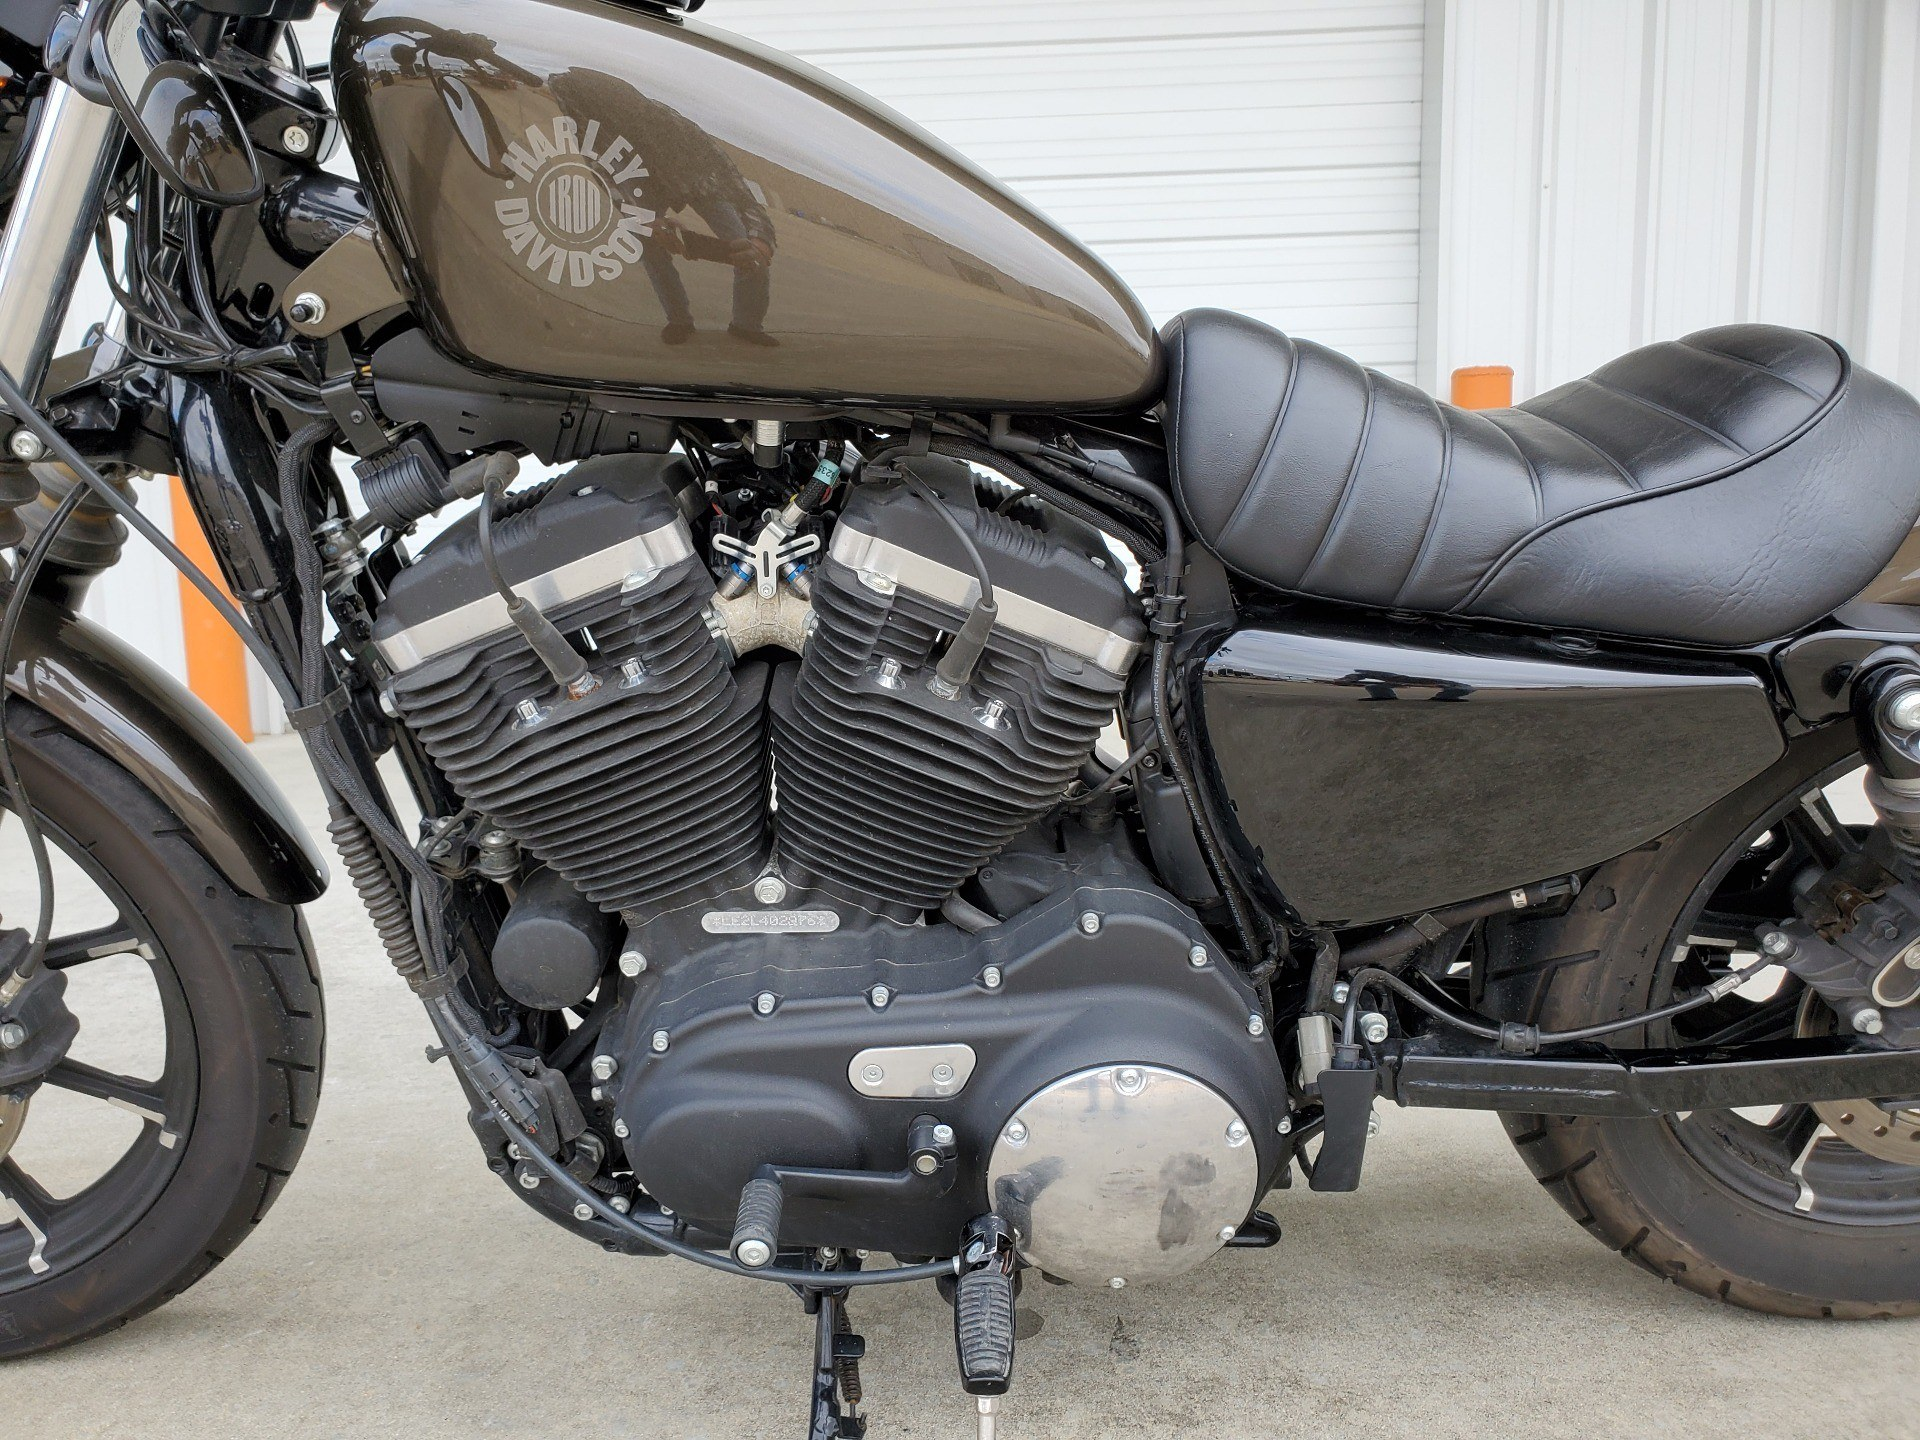 used 2020 Harley Sportster Iron 883 for sale - Photo 7